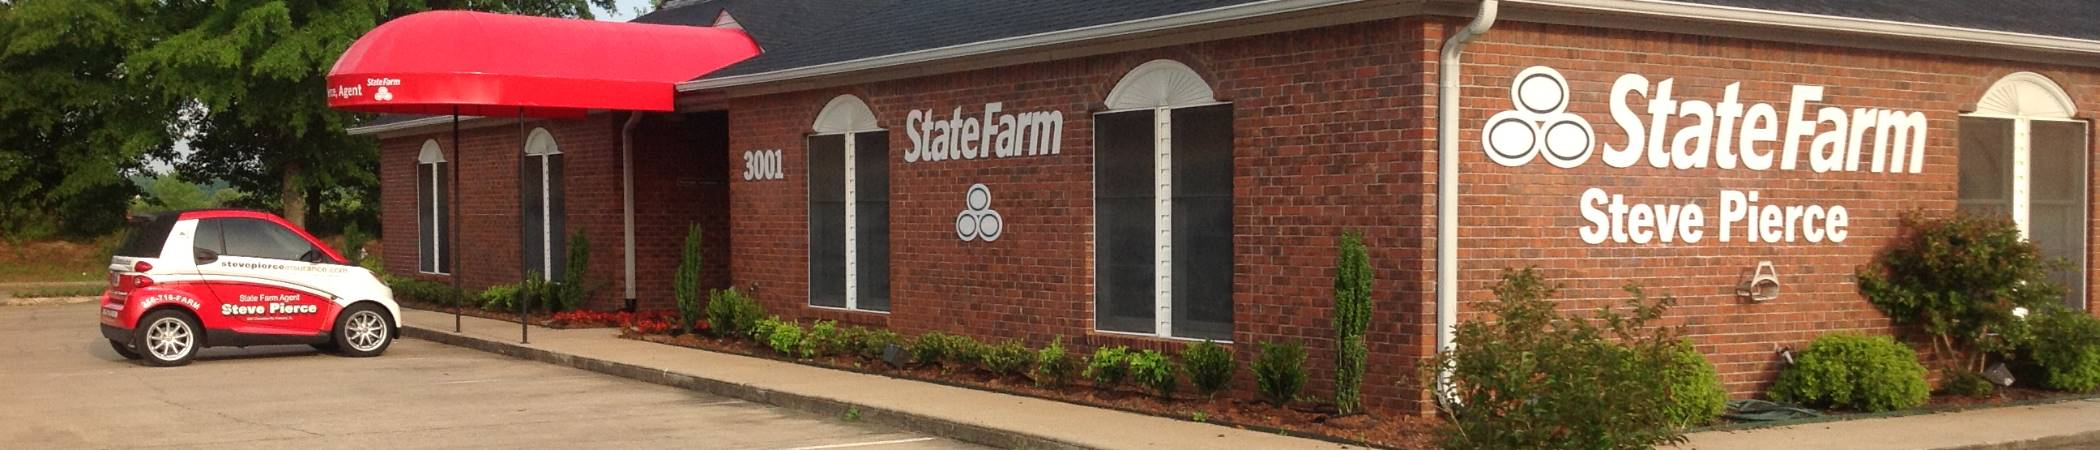 Steve Pierce State Farm Insurance in Florence, AL | Home, Auto Insurance & more